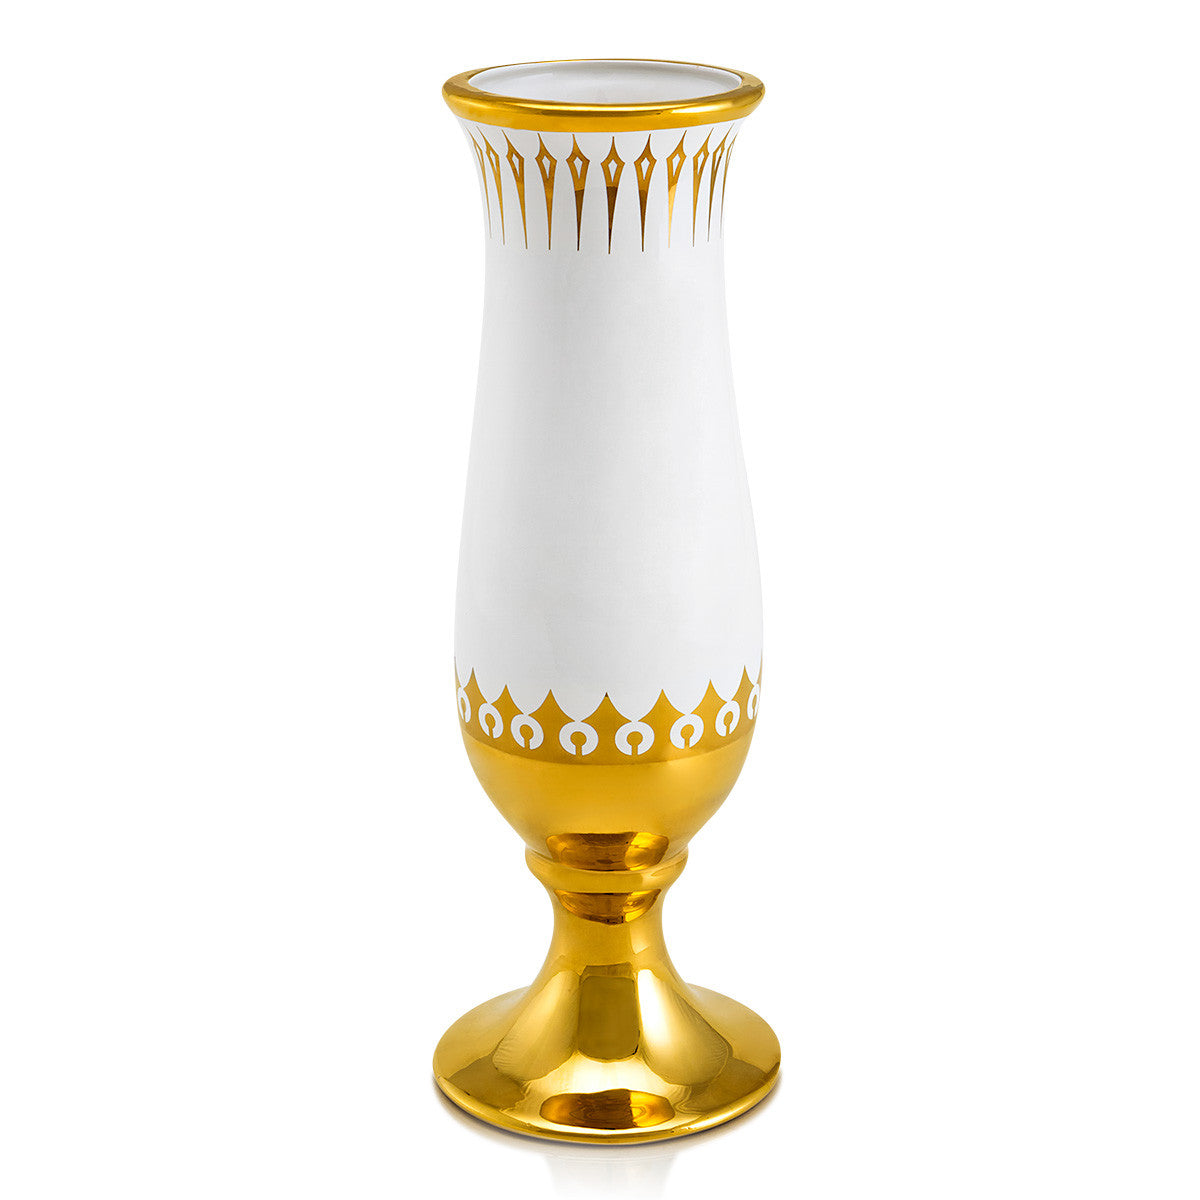 Hand-painted ceramic porcelain chalice long vase in white glaze and finished in pure gold and enriched with modern design